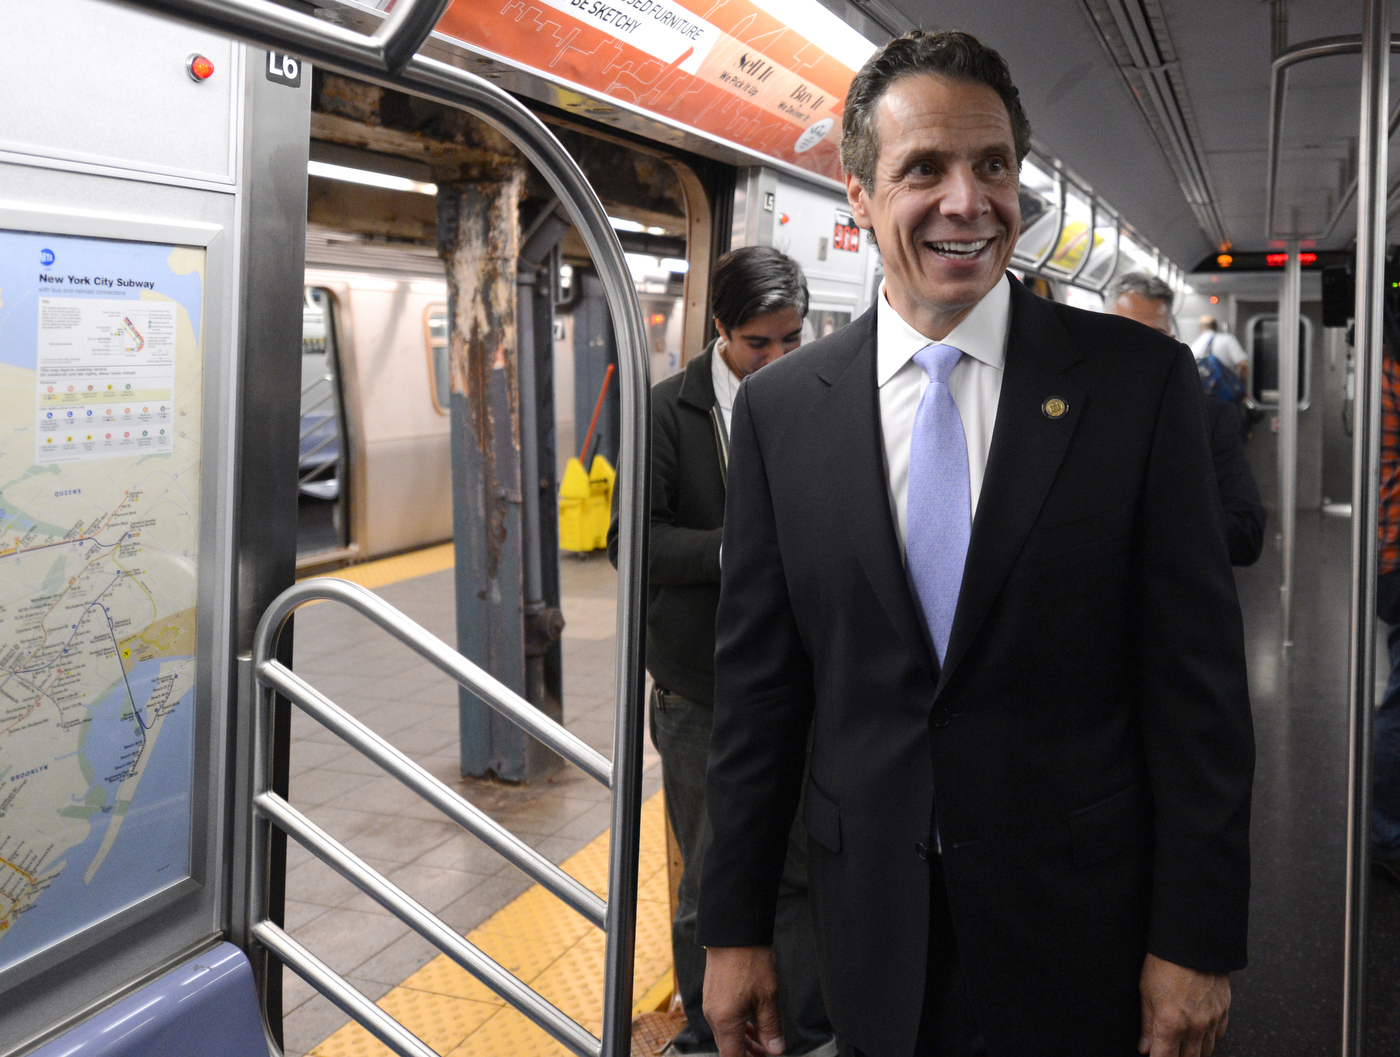 New York Governor Andrew M. Cuomo and MTA Chairman and CEO Thomas Prendergast rode an E train from Chambers St. to 34 St.-Penn Station on Thu., September 25, 2014 to assure New Yorkers that all security precautions are being taken, and that the subway system is safe amid reports of unspecified threats. Photo: Marc A. Hermann / MTA New York City Transit